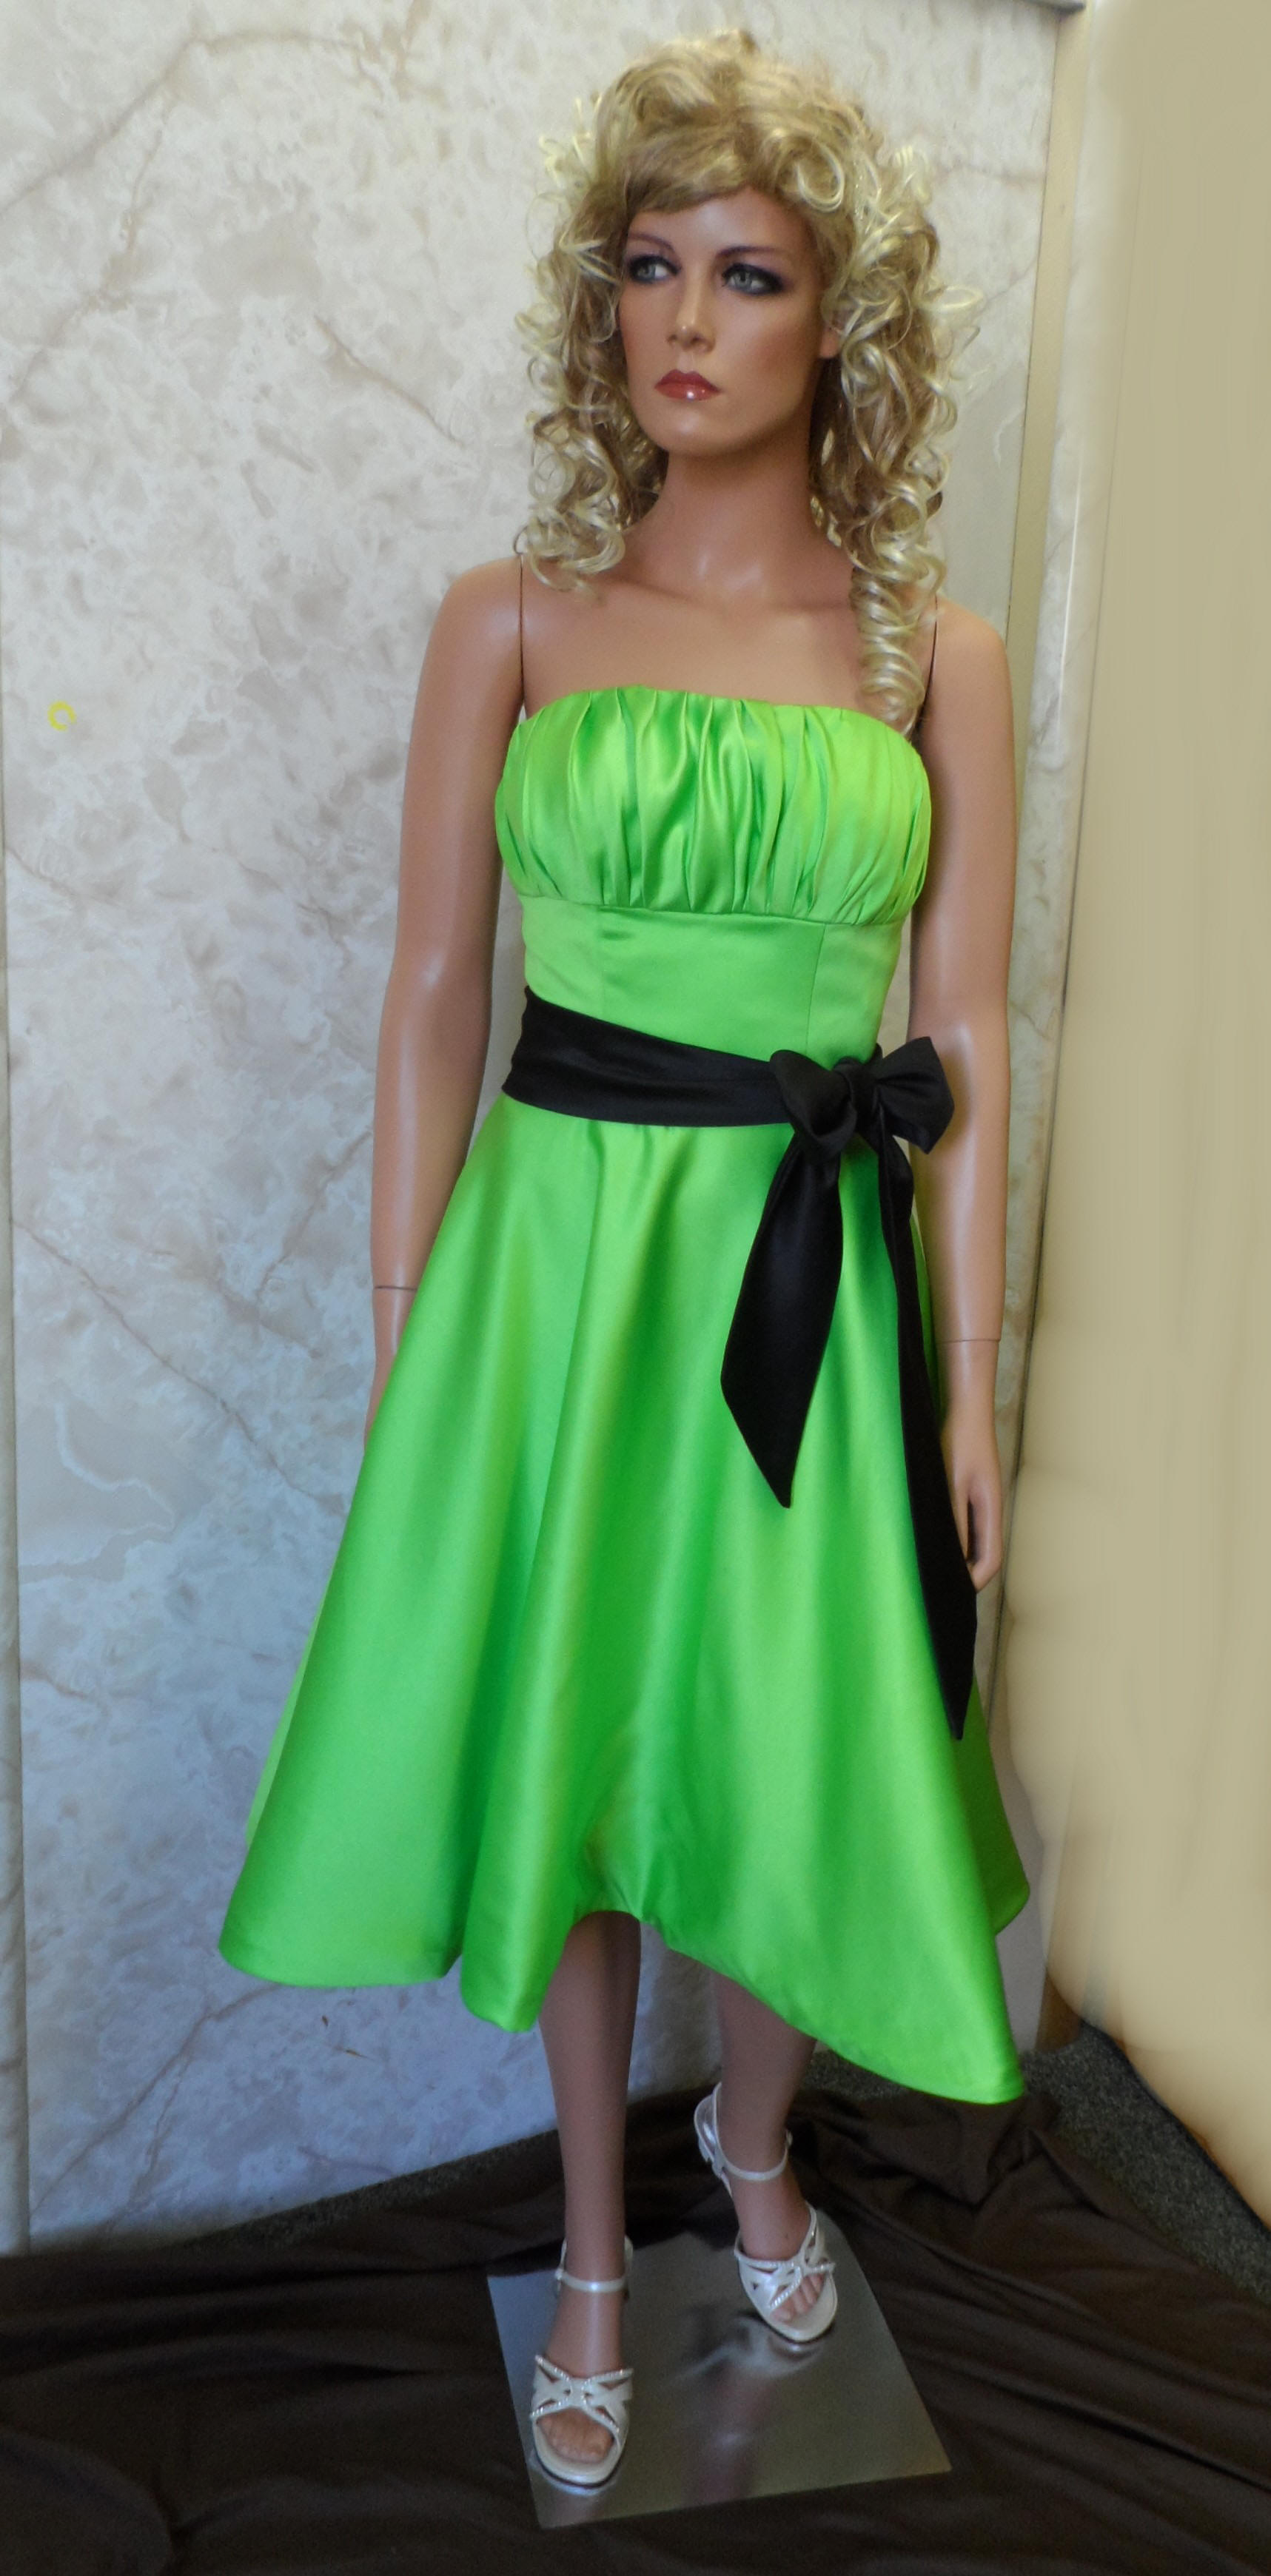 Green bridesmaid dresses short green bridesmaid dress with black sash ombrellifo Choice Image